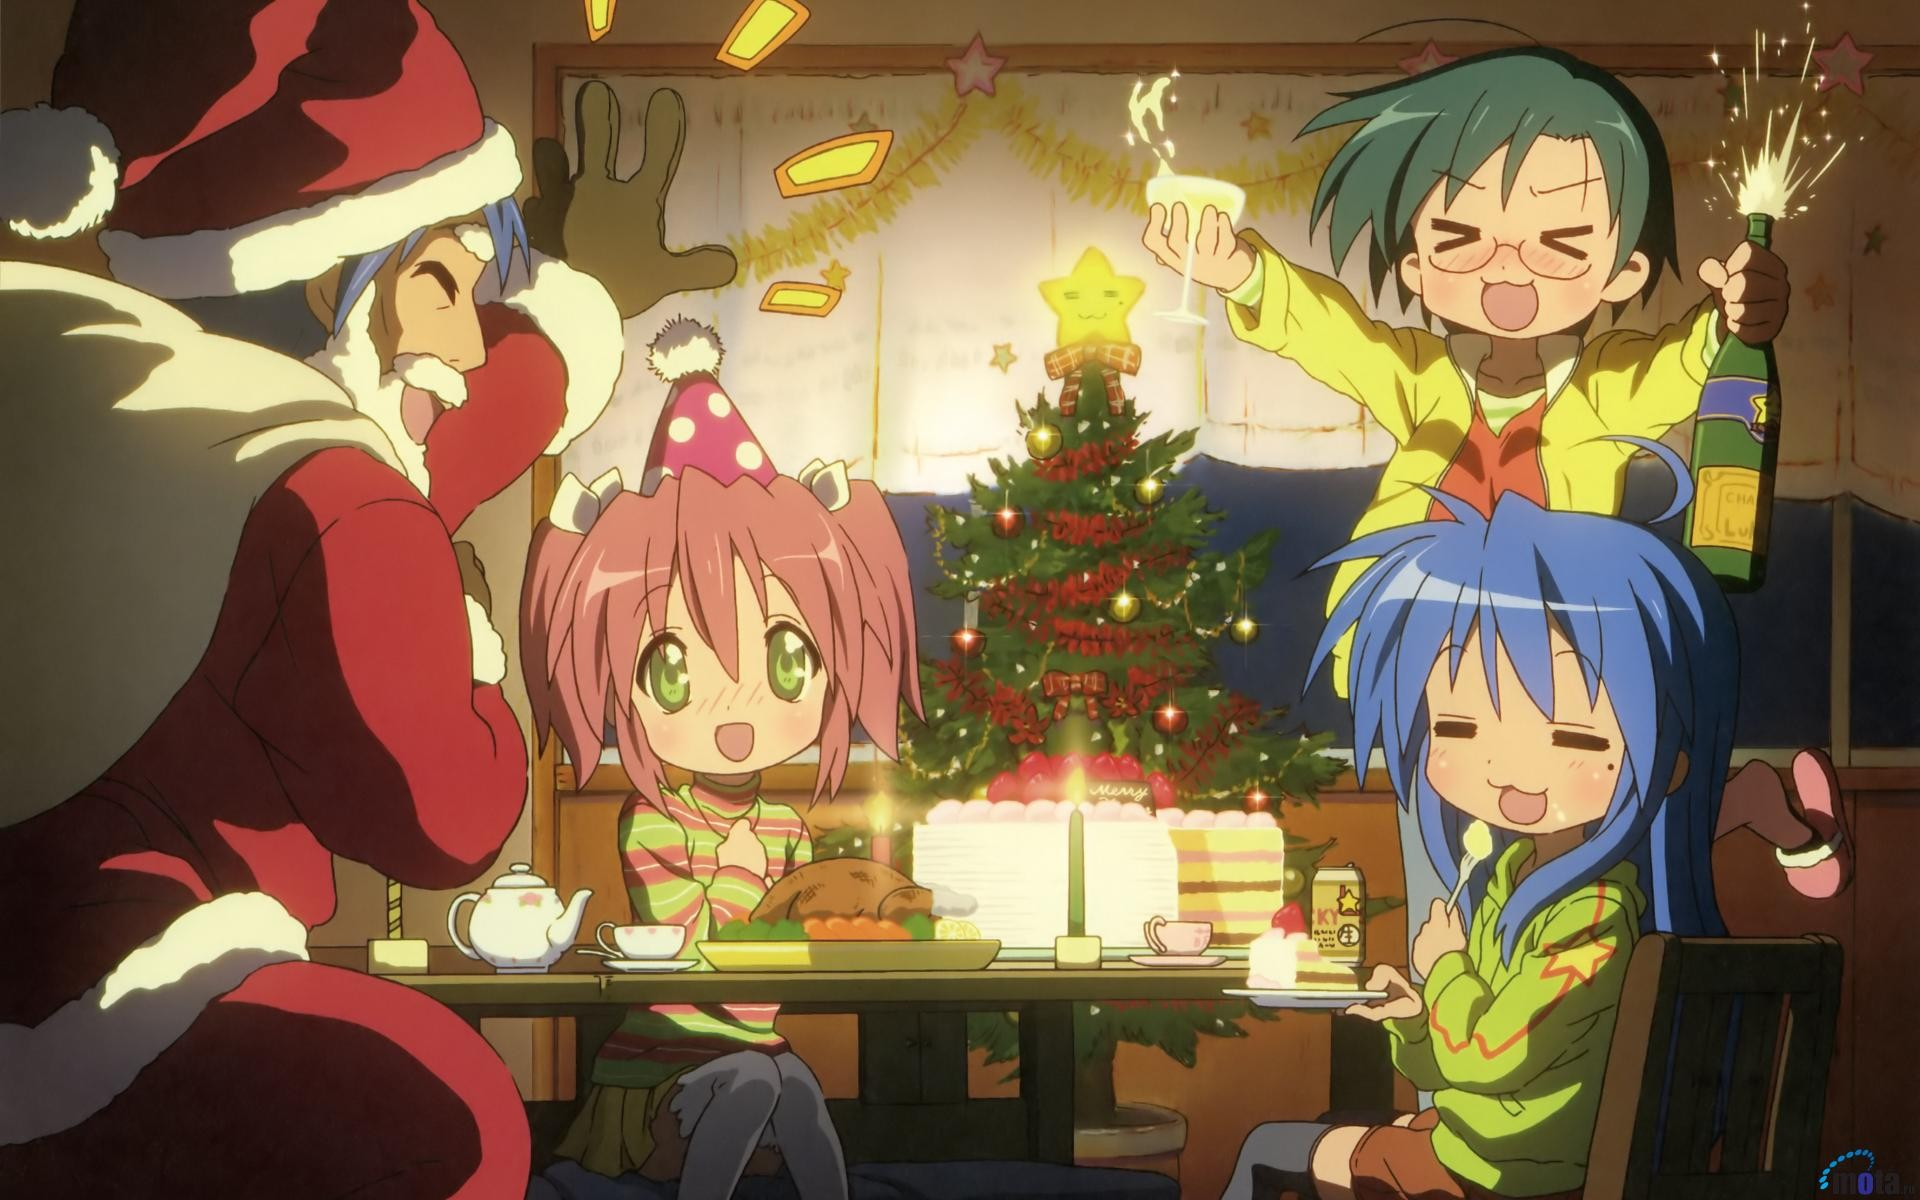 Cute Chibi Girl Wallpaper Anime Christmas Wallpaper 183 ① Download Free Awesome Hd